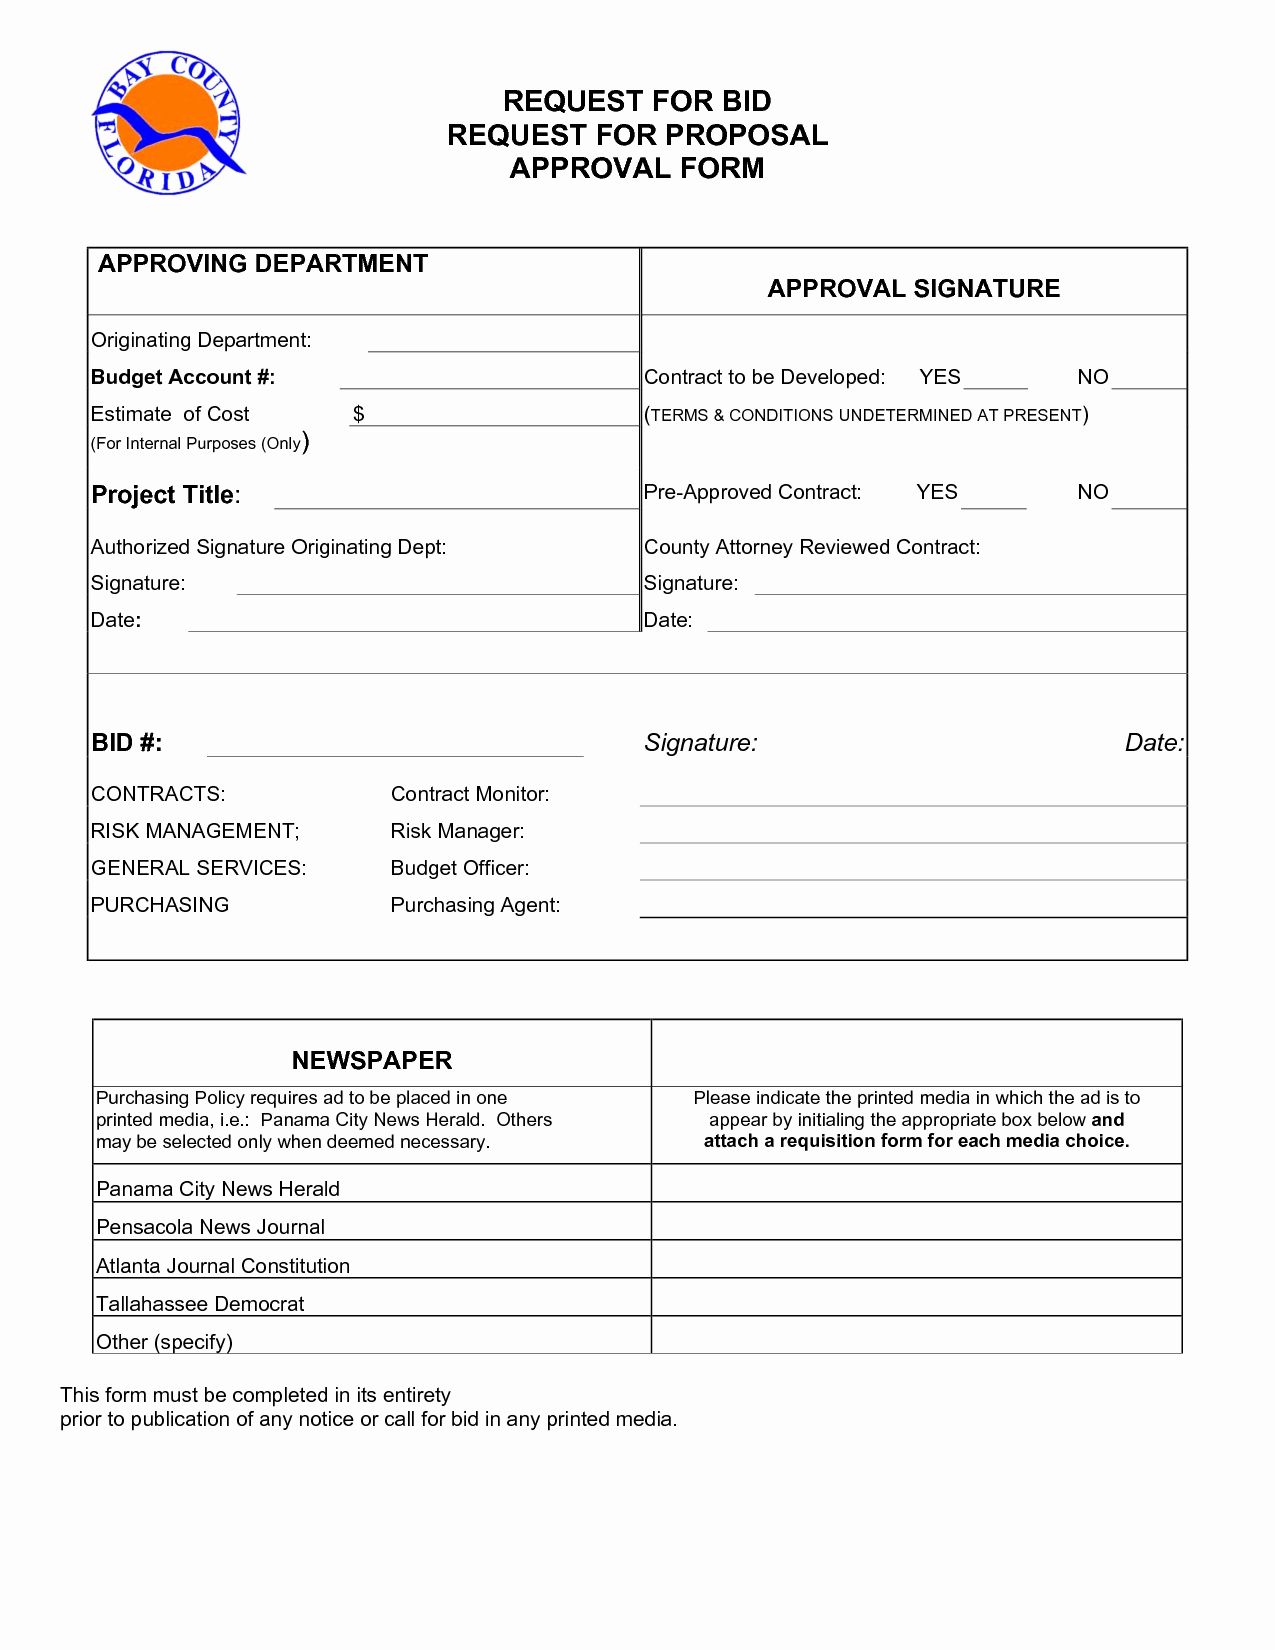 Request for Bid Template Beautiful 6 Best Of Request for Proposal form Request for